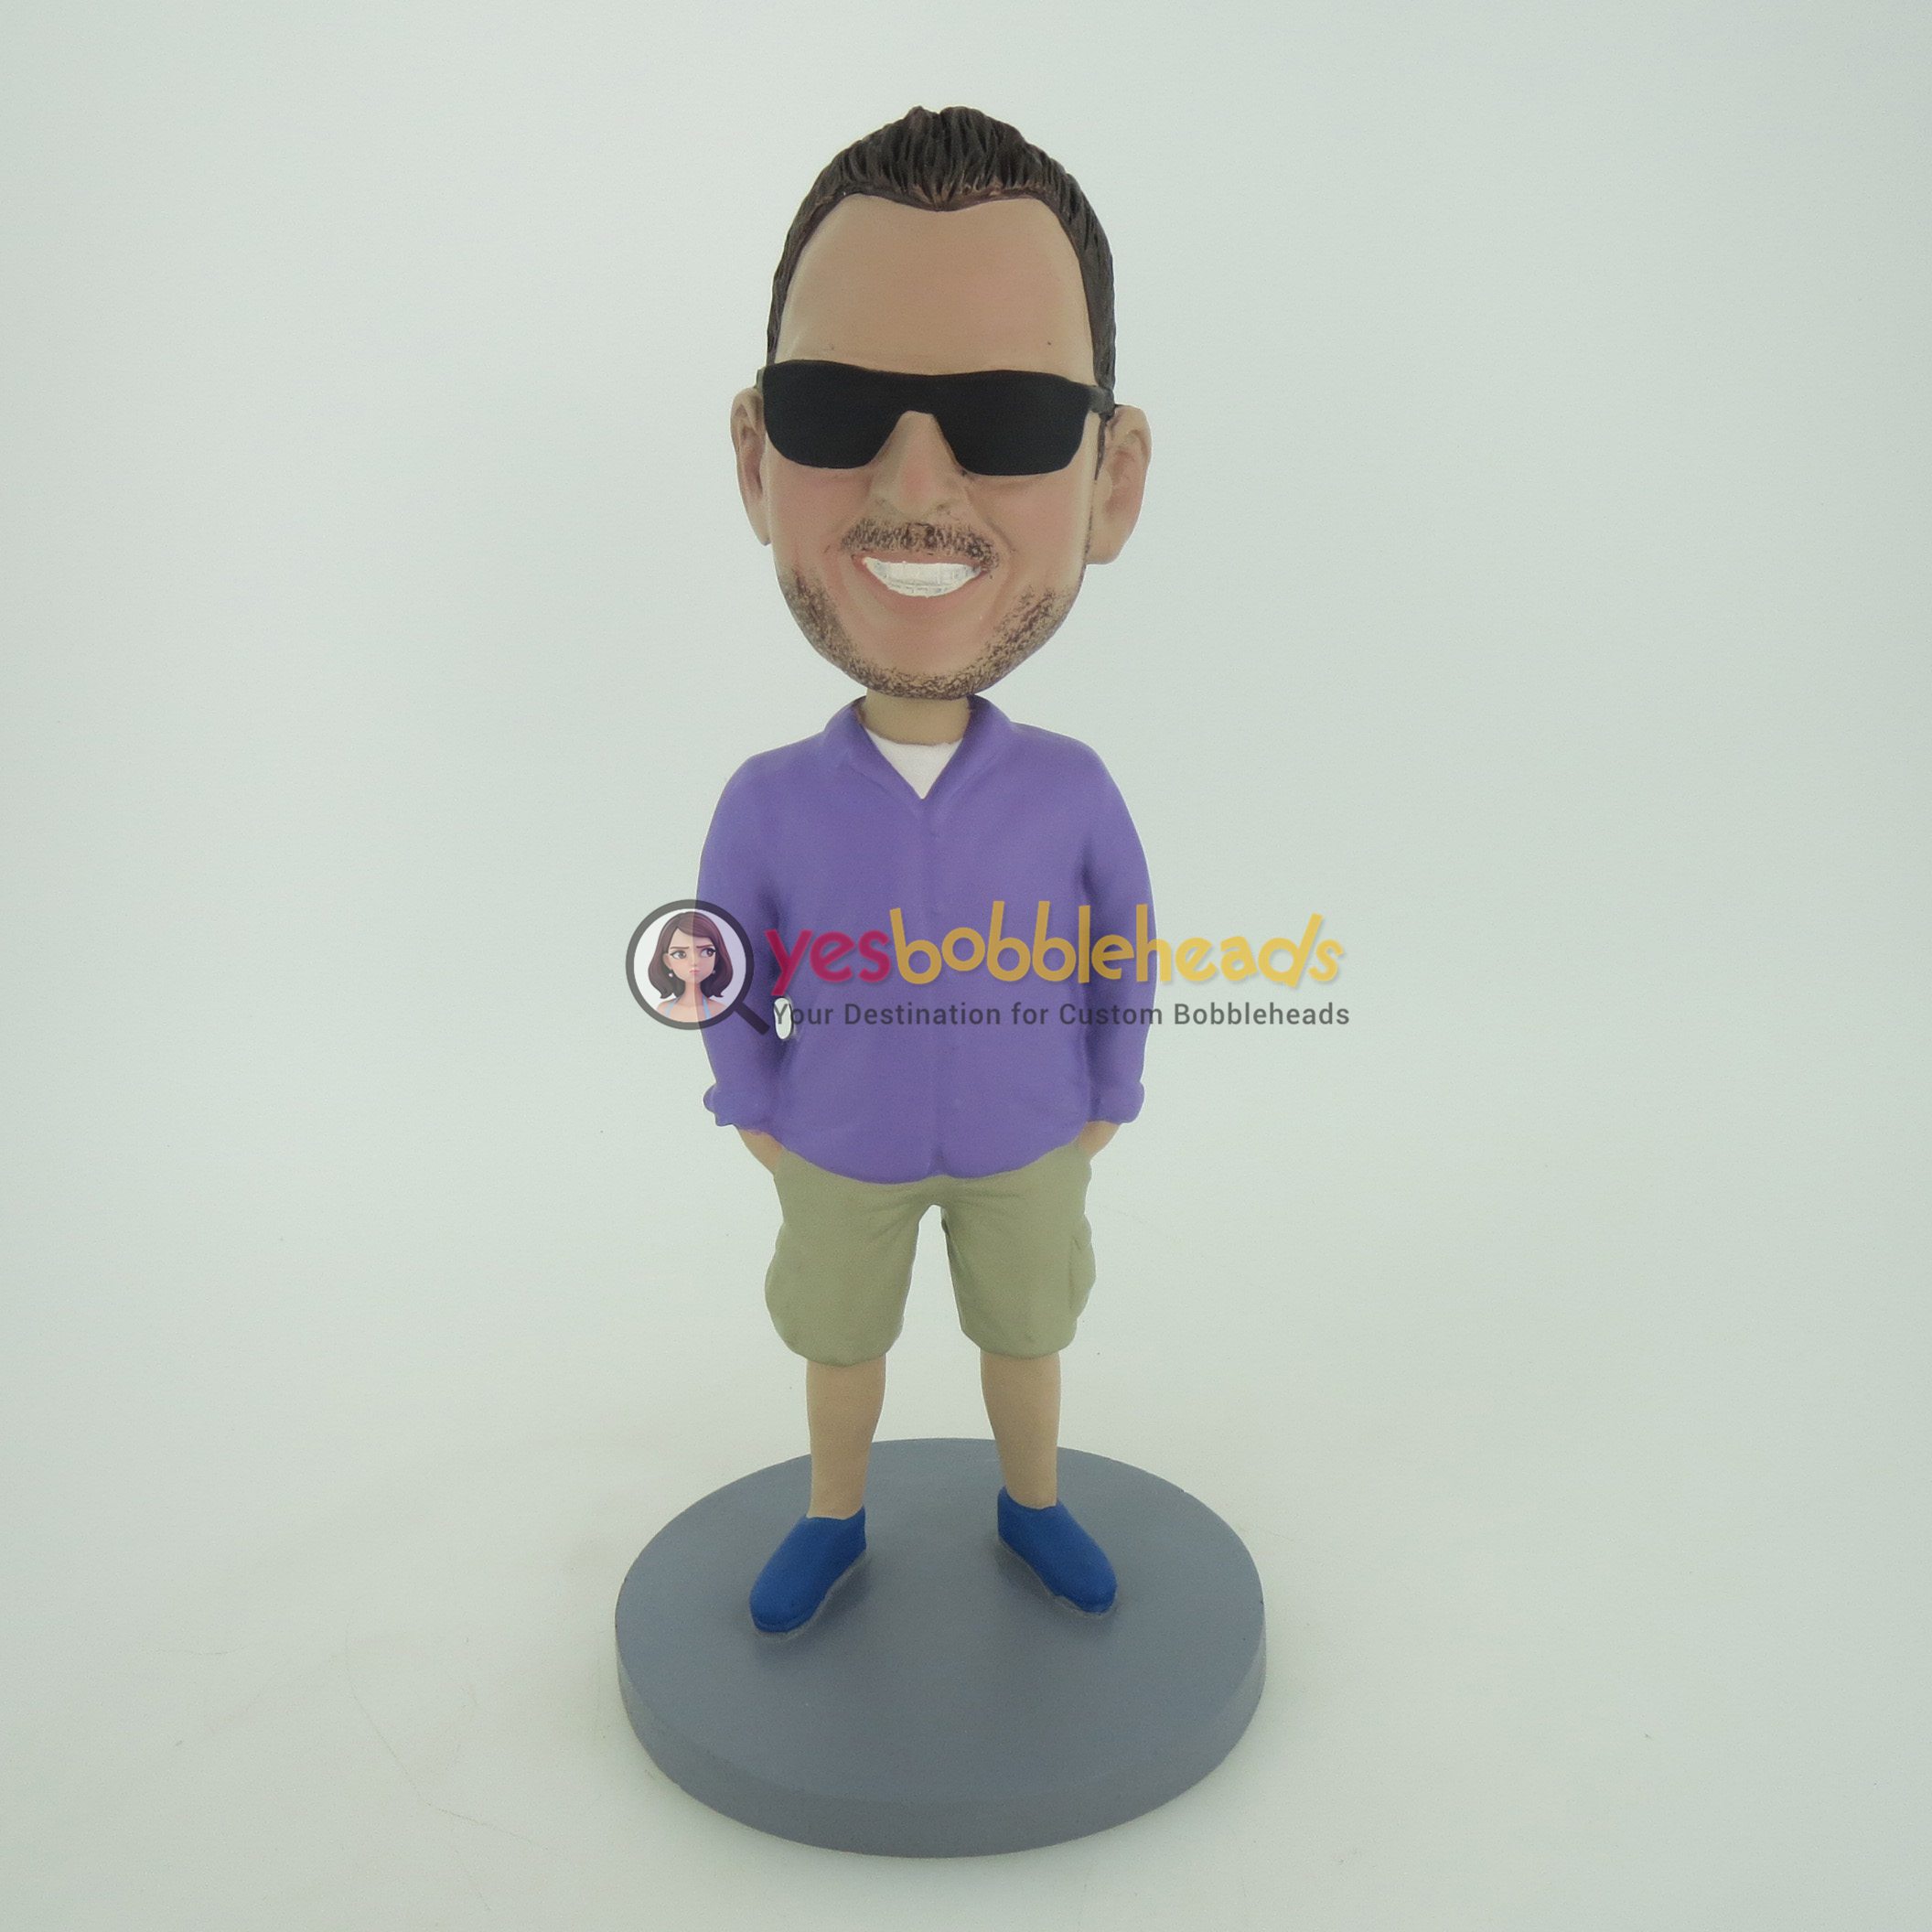 Picture of Custom Bobblehead Doll: Cugar In Purple Shirt And Sunglass